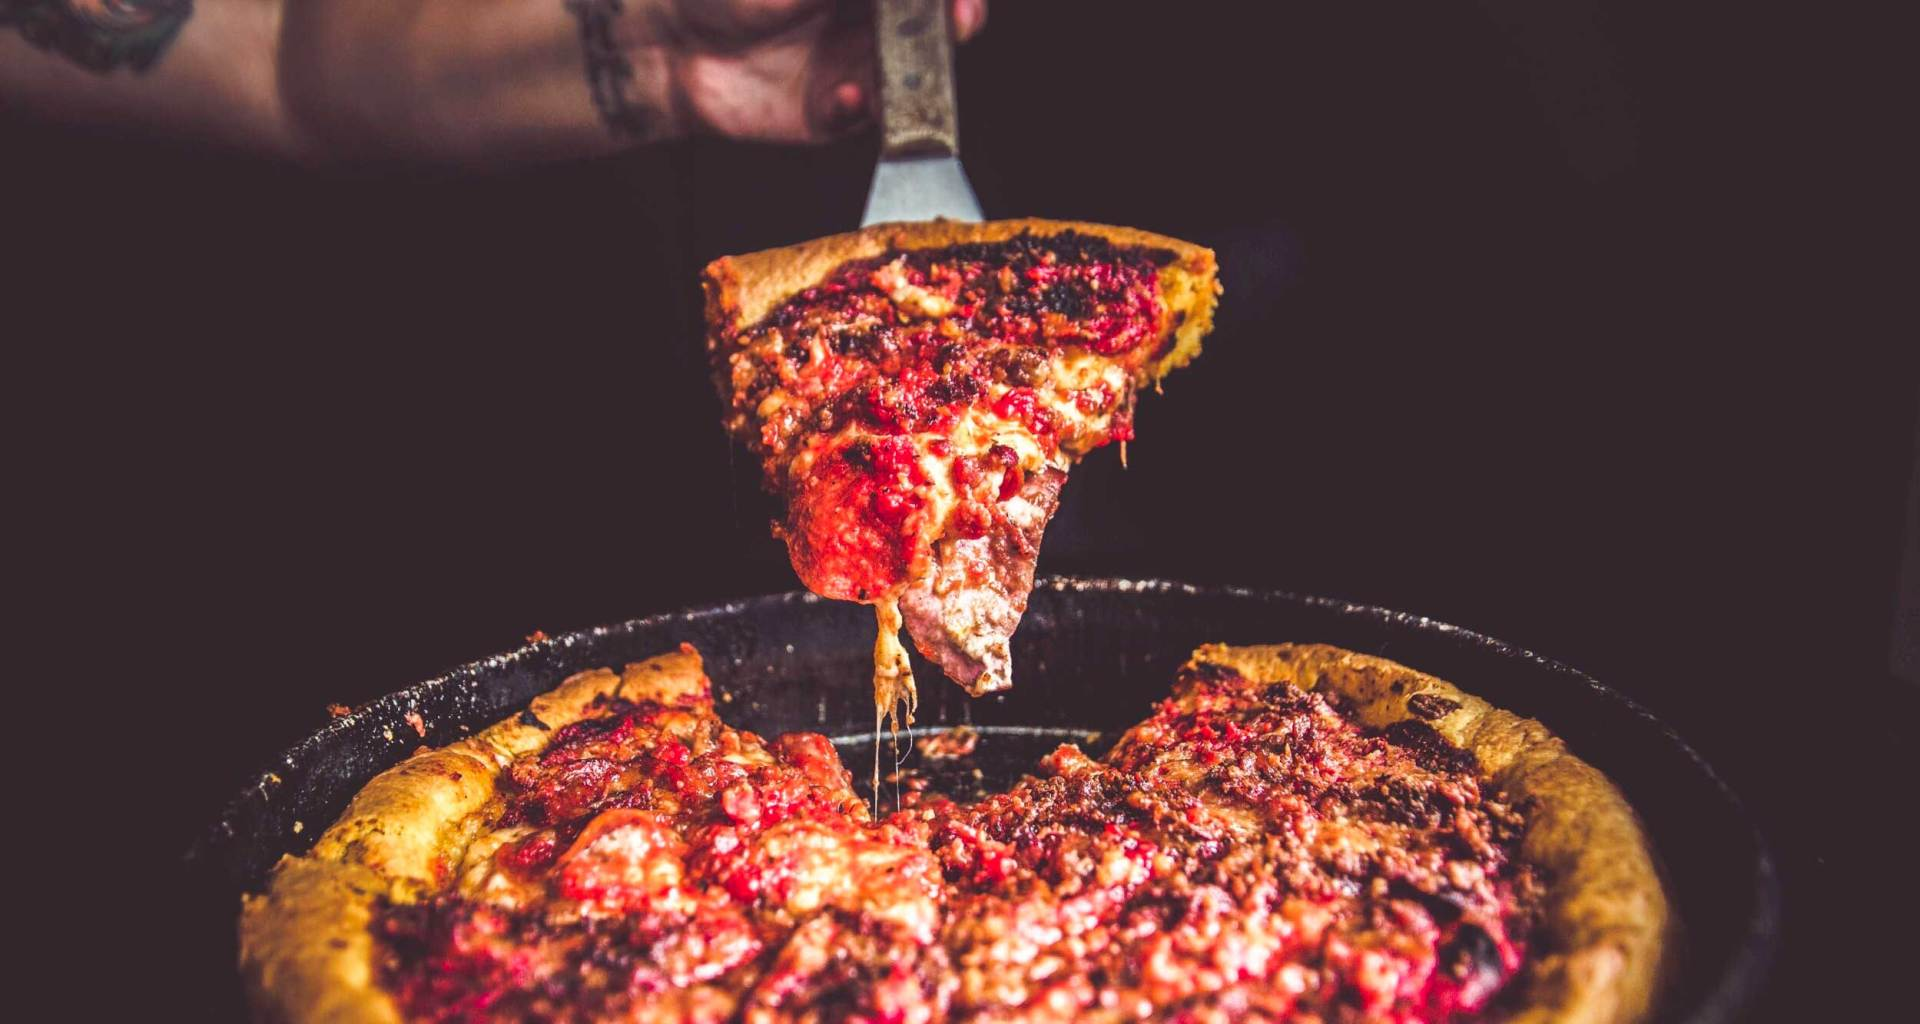 Slice of deep dish pizza being lifted from the whole pie.